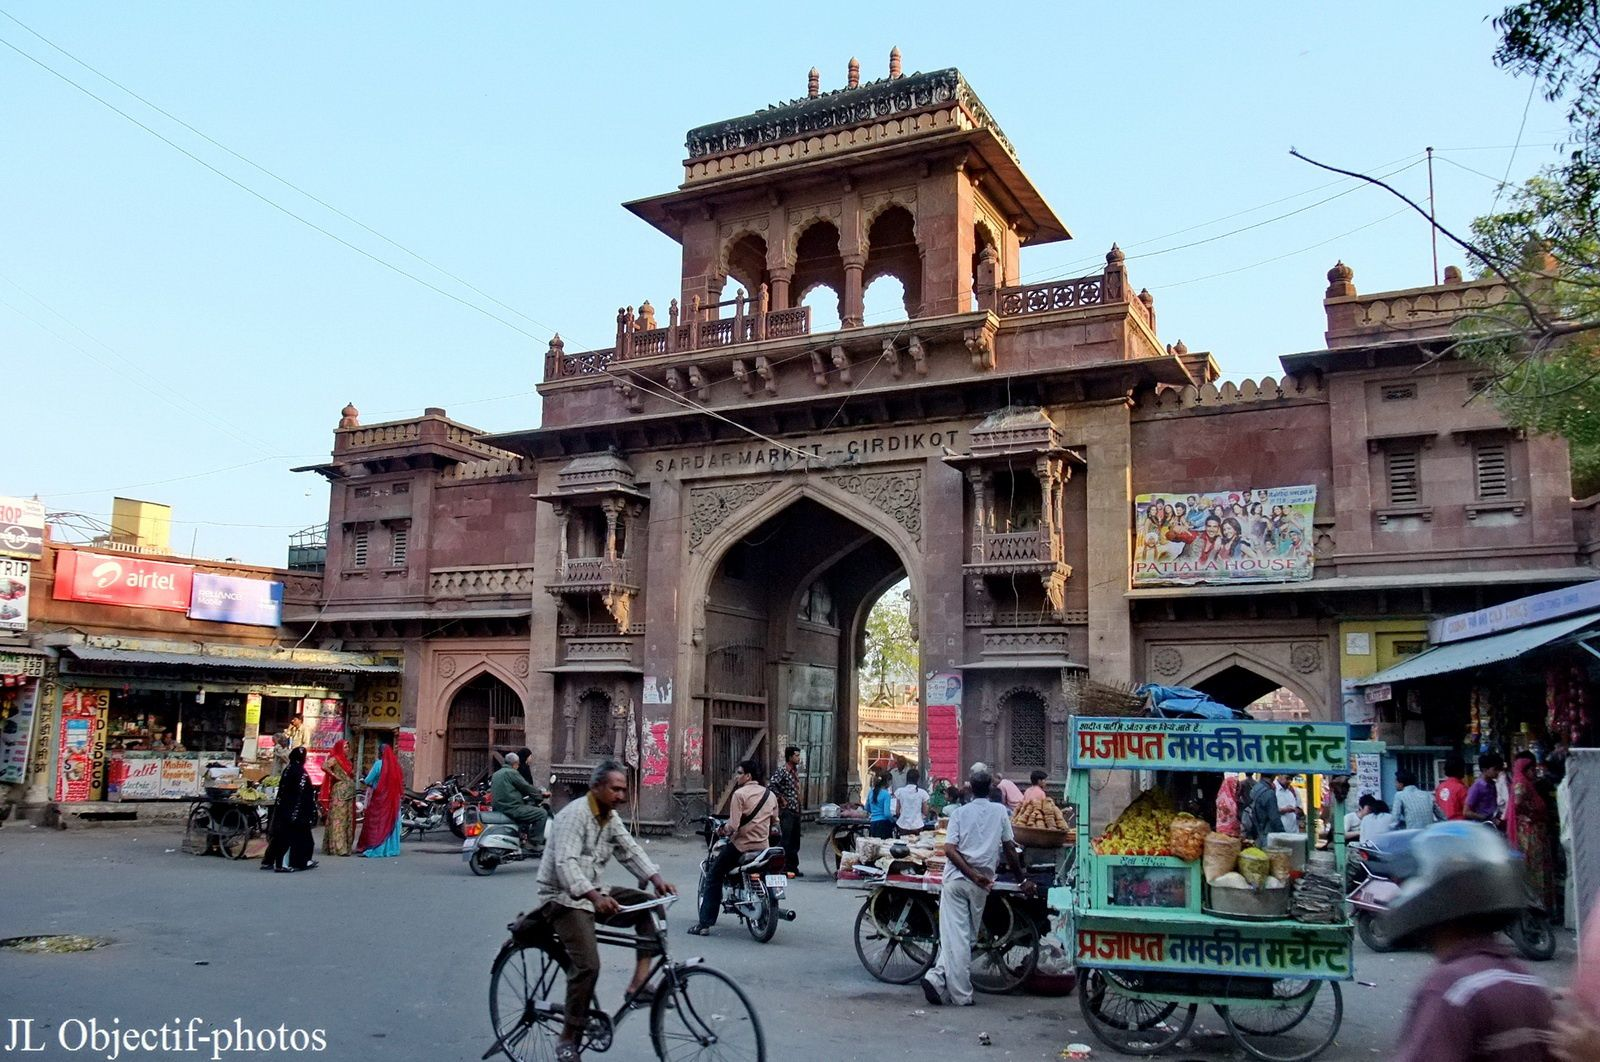 Sardar Market, Jodhpur, Rajasthan, Inde, image Inde, photo India, photos Inde, Images of India